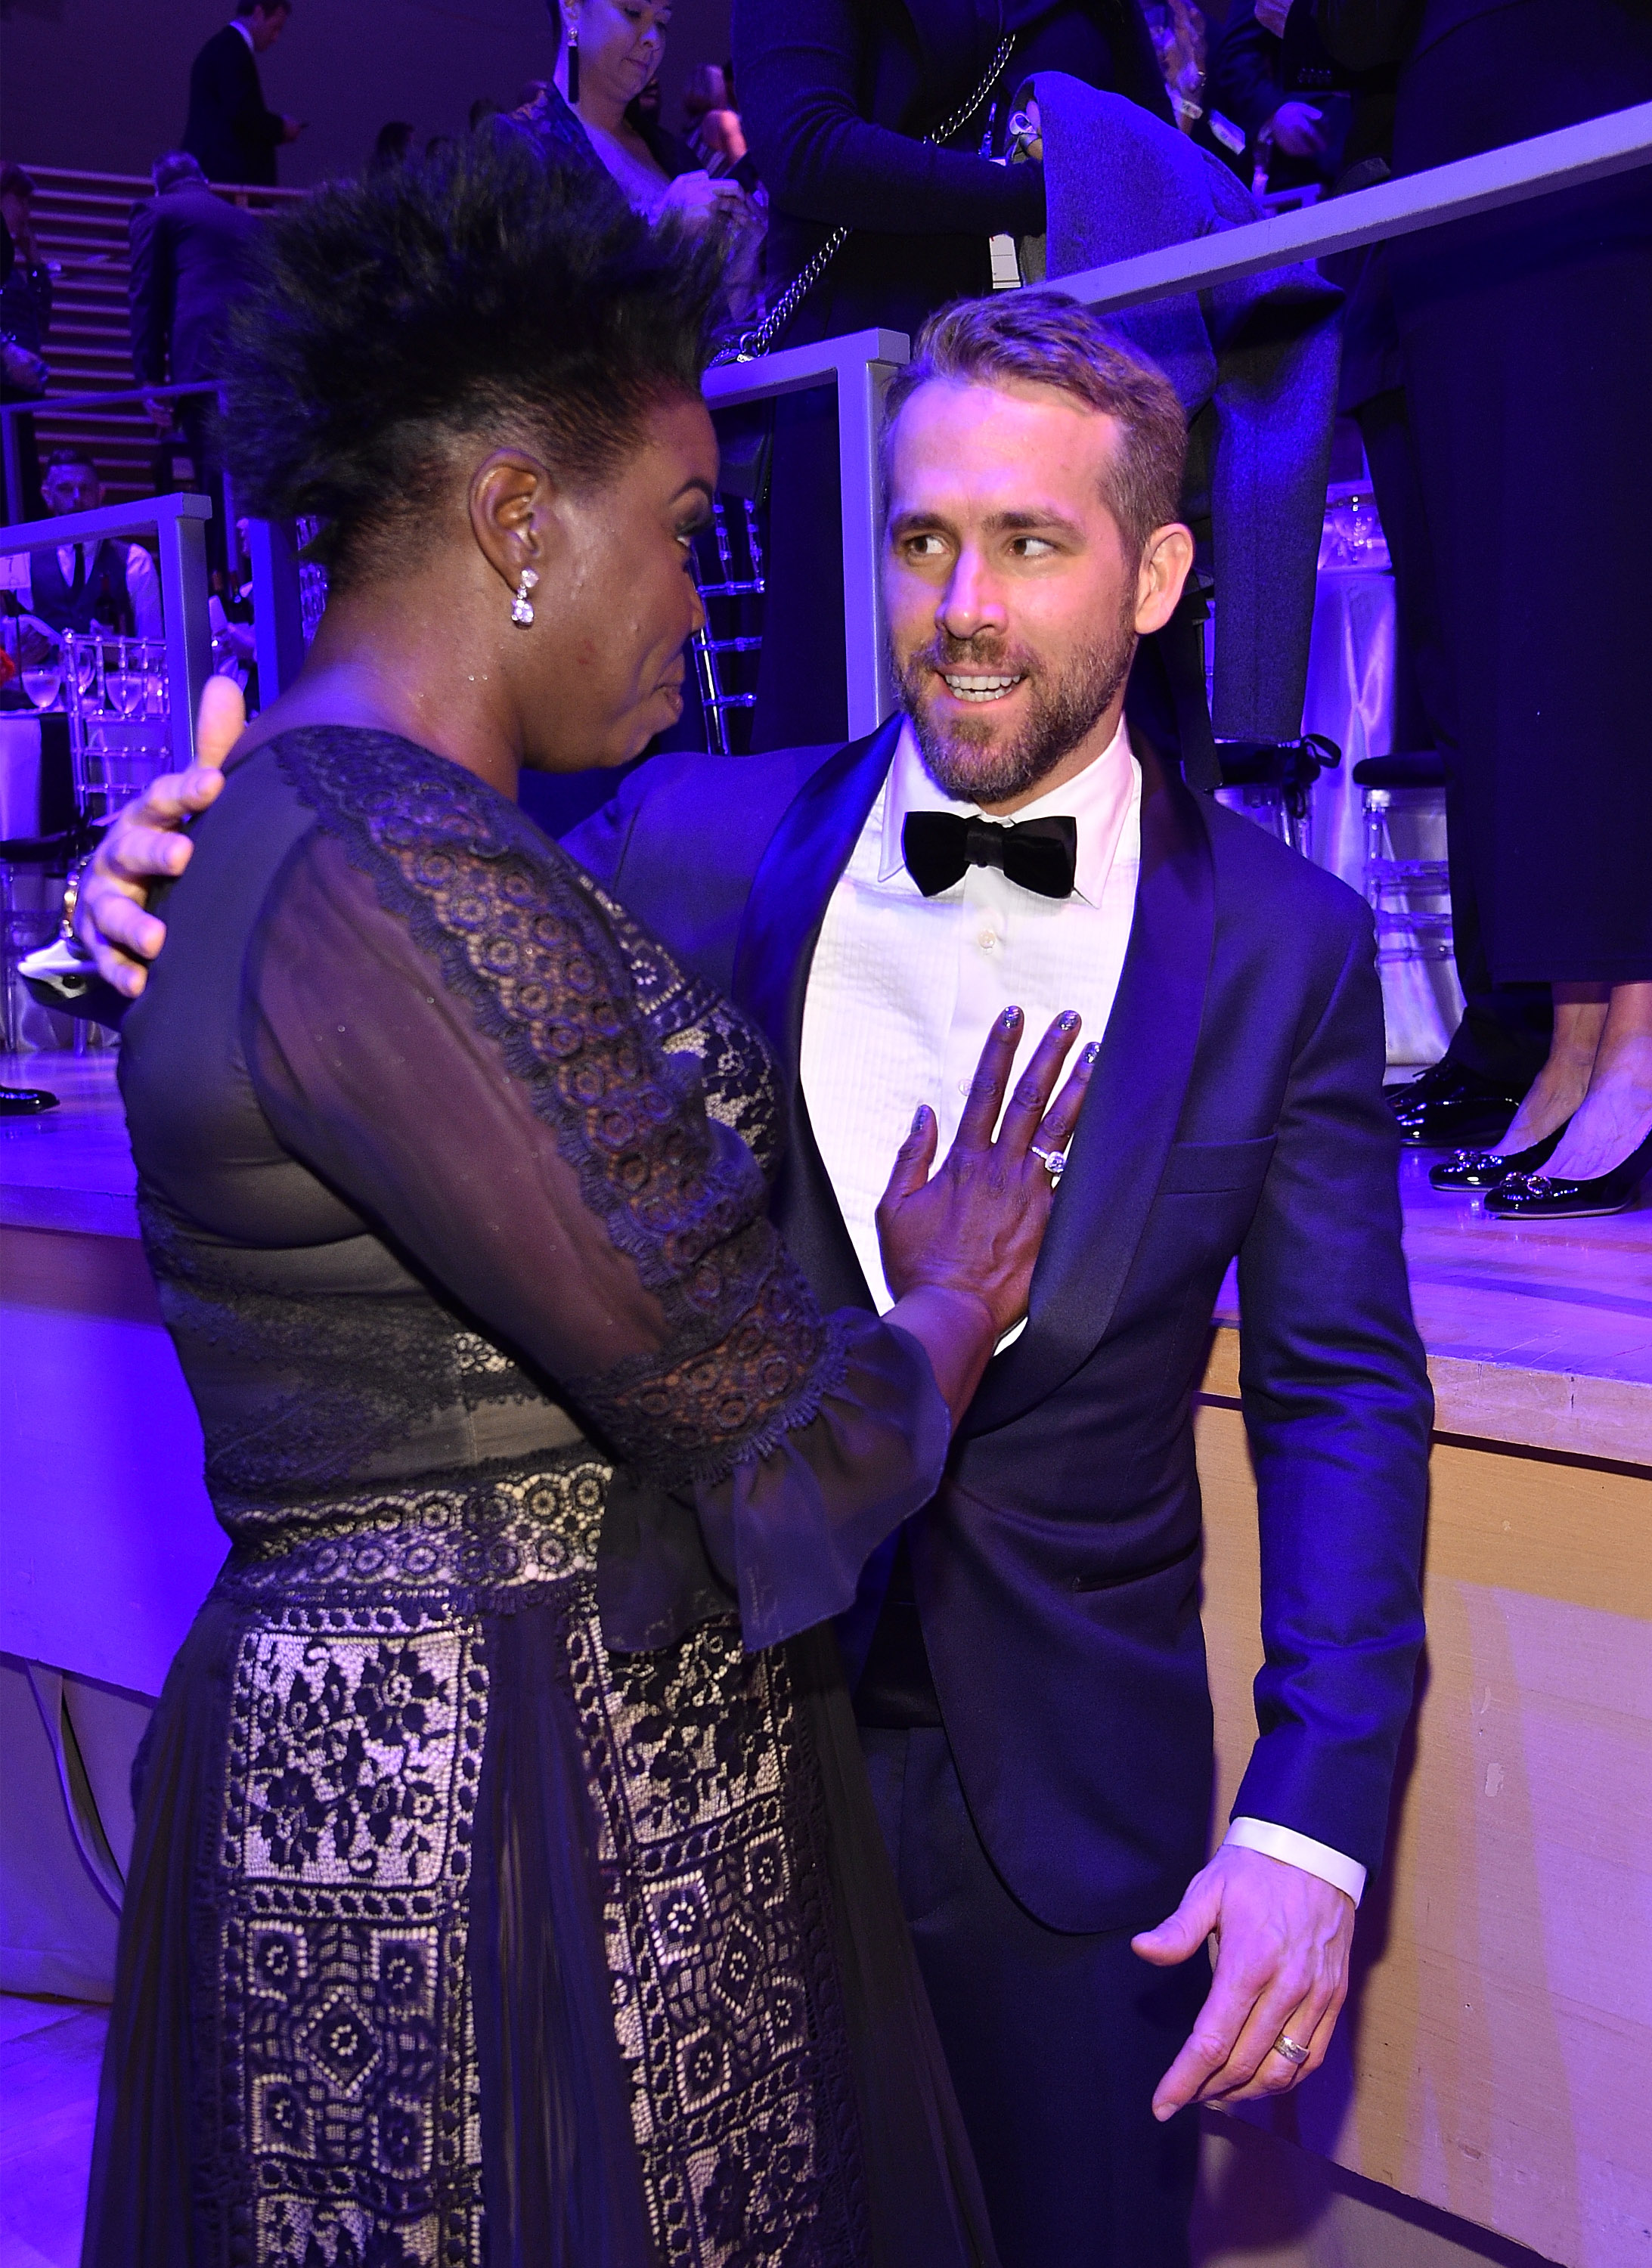 NEW YORK, NY - APRIL 25: Leslie Jones and Ryan Reynolds attend 2017 Time 100 Gala at Jazz at Lincoln Center on April 25, 2017 in New York City. (Photo by Kevin Mazur/Getty Images for TIME)